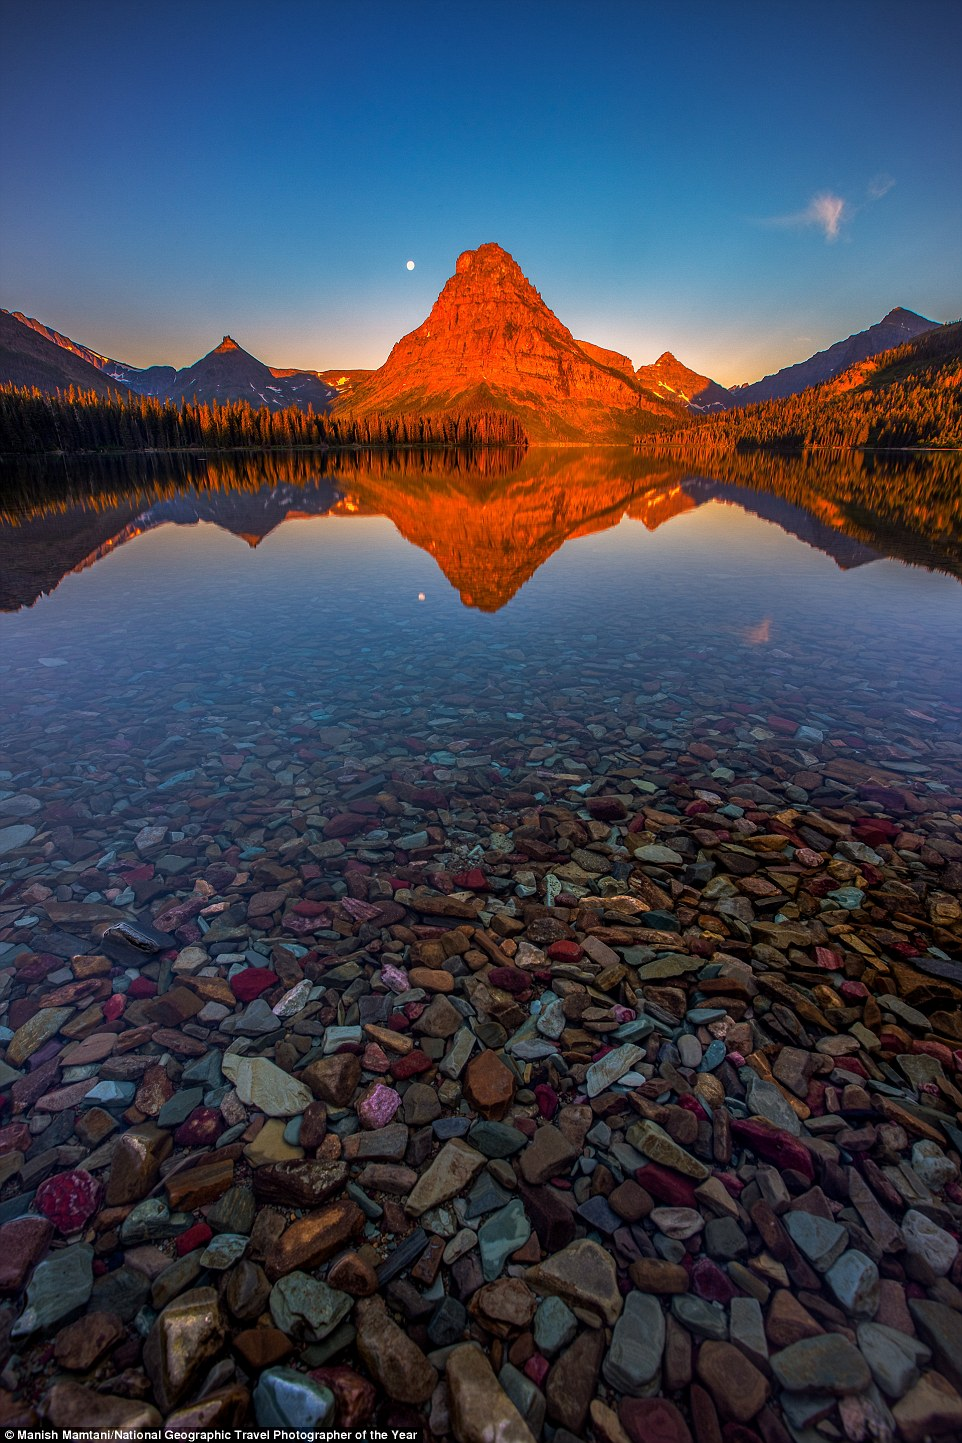 Manish Mamtani drove one early morning from St. Mary's Lodge to see the sunrise at Two Medicine lake in Glacier National Park in Montana. There were no clouds but the lake water was so calm it created a perfect reflection of the red light kissing the Sinopah Mountain. As there was no wind in the morning, the colourful rocks in the foreground were visible